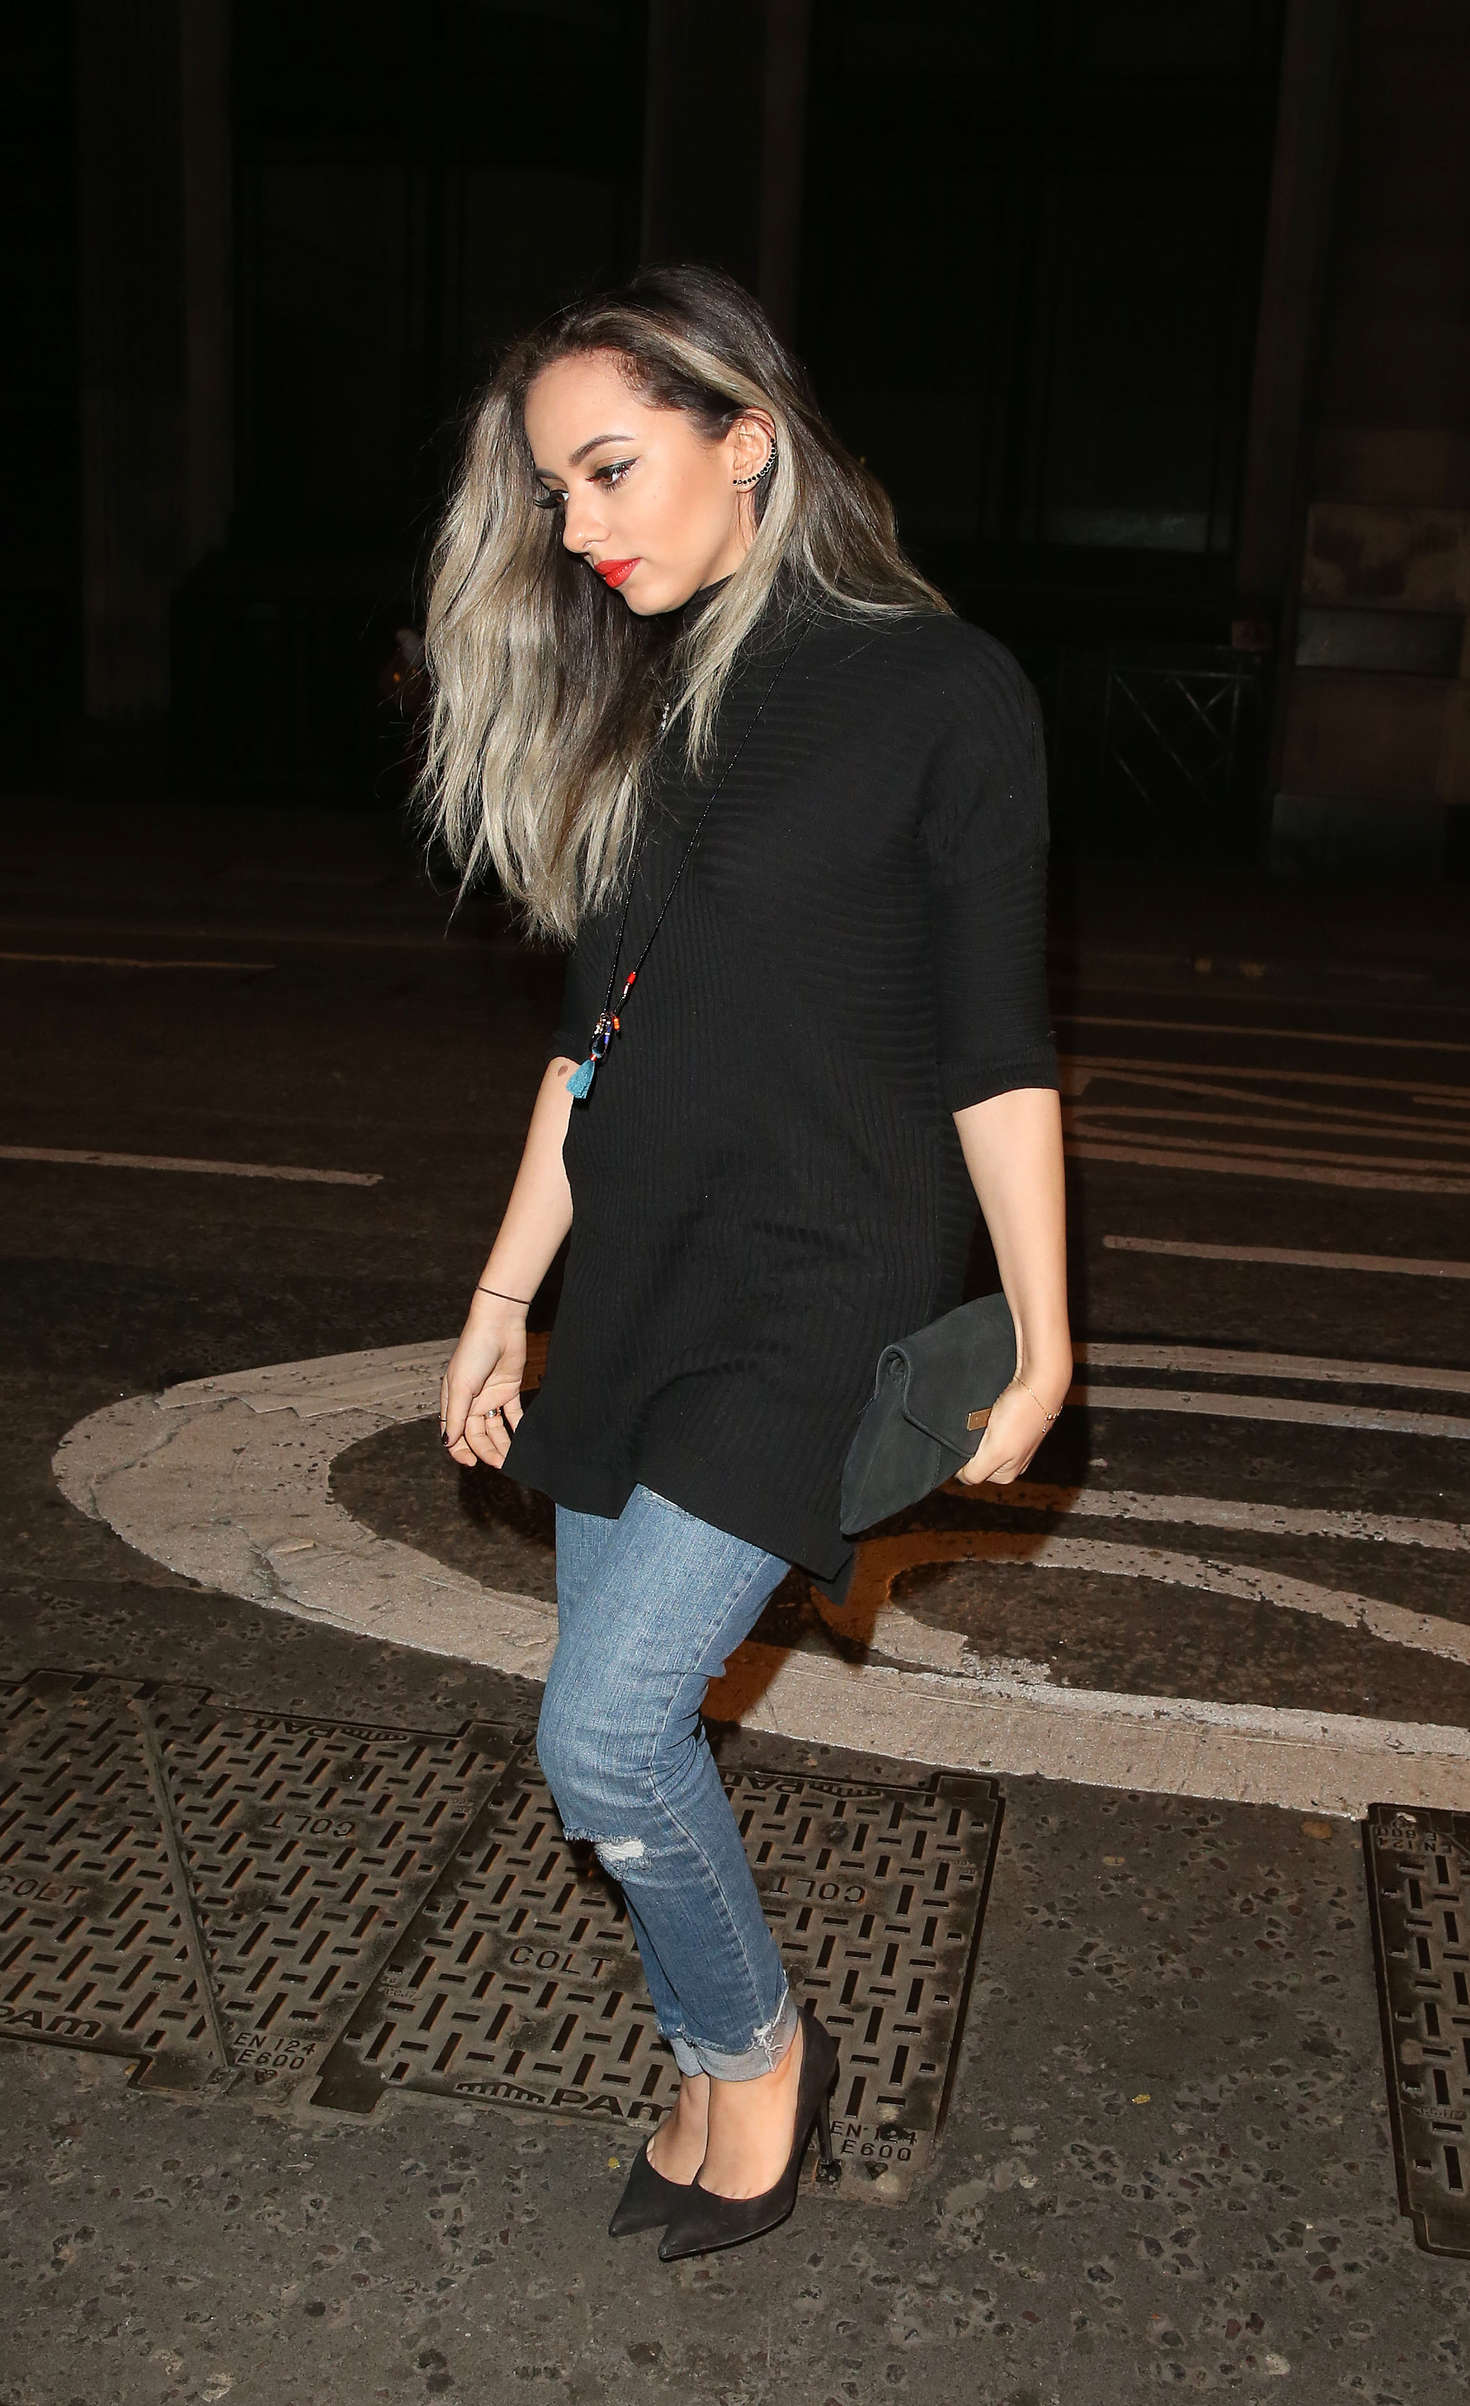 Jade Thirlwall at Steam Rye Club in London